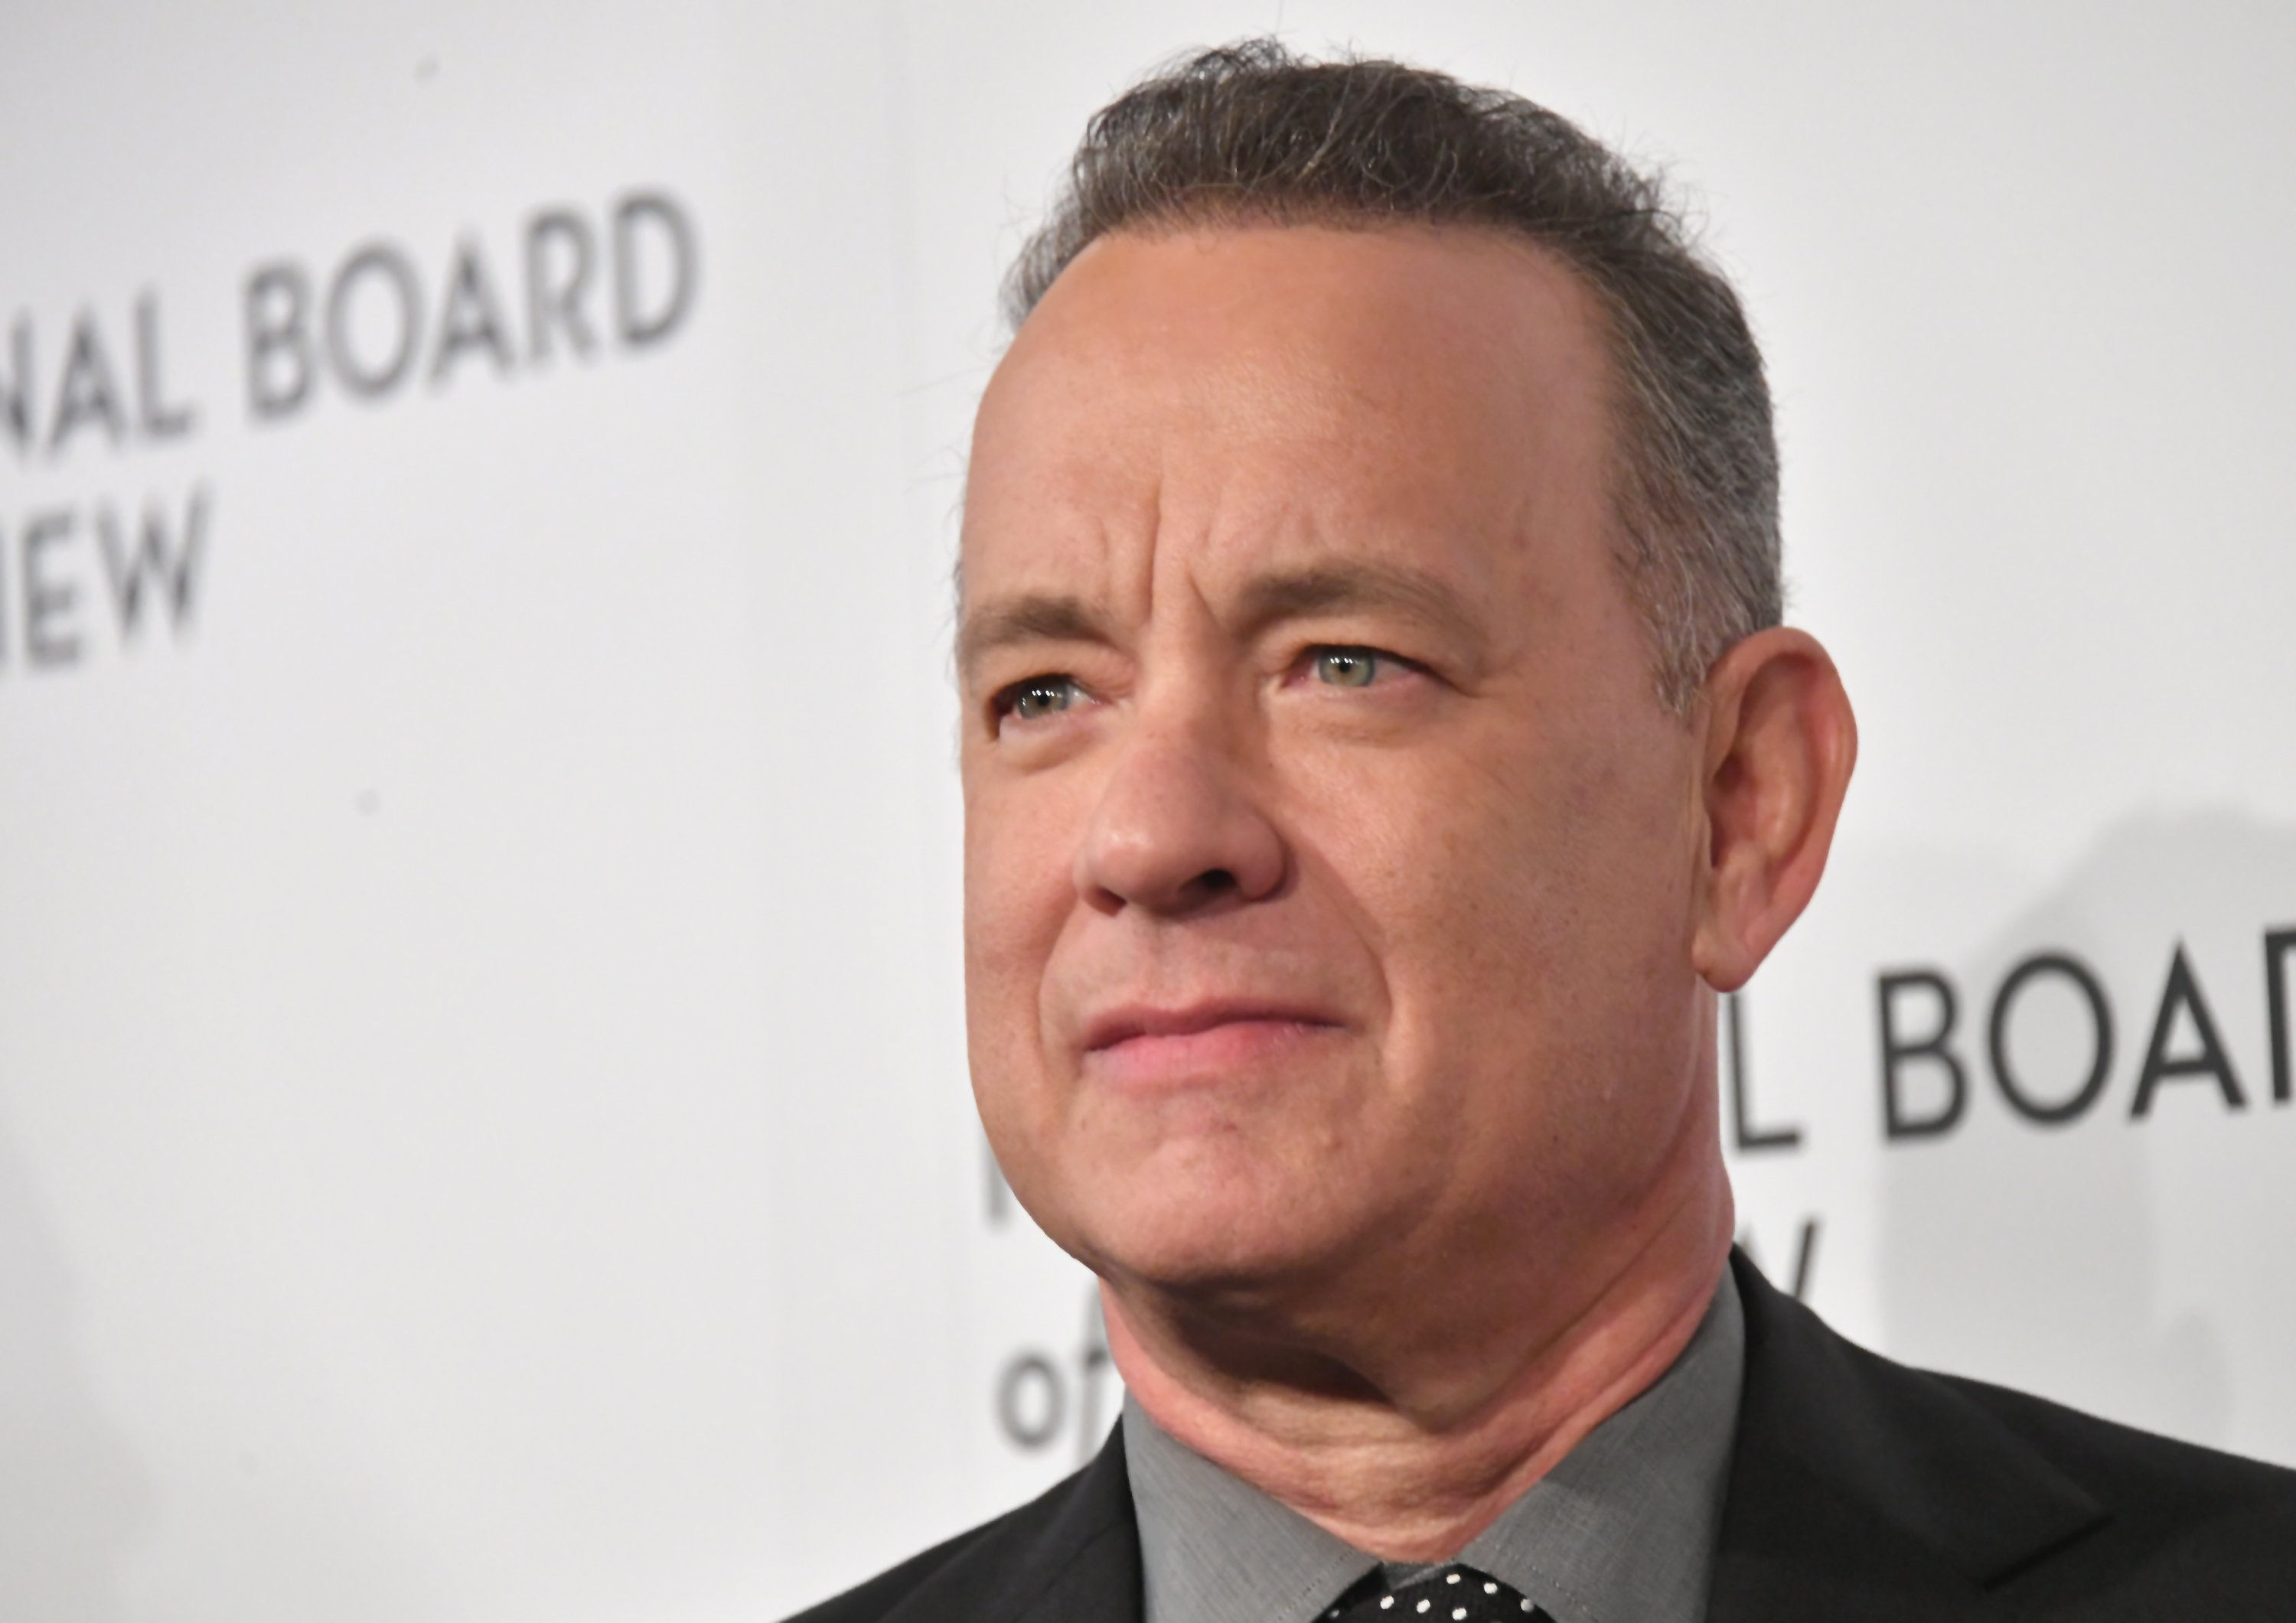 Tom Hanks at the 2018 National Board of Review Annual Awards Gala. | Photo: Getty Images